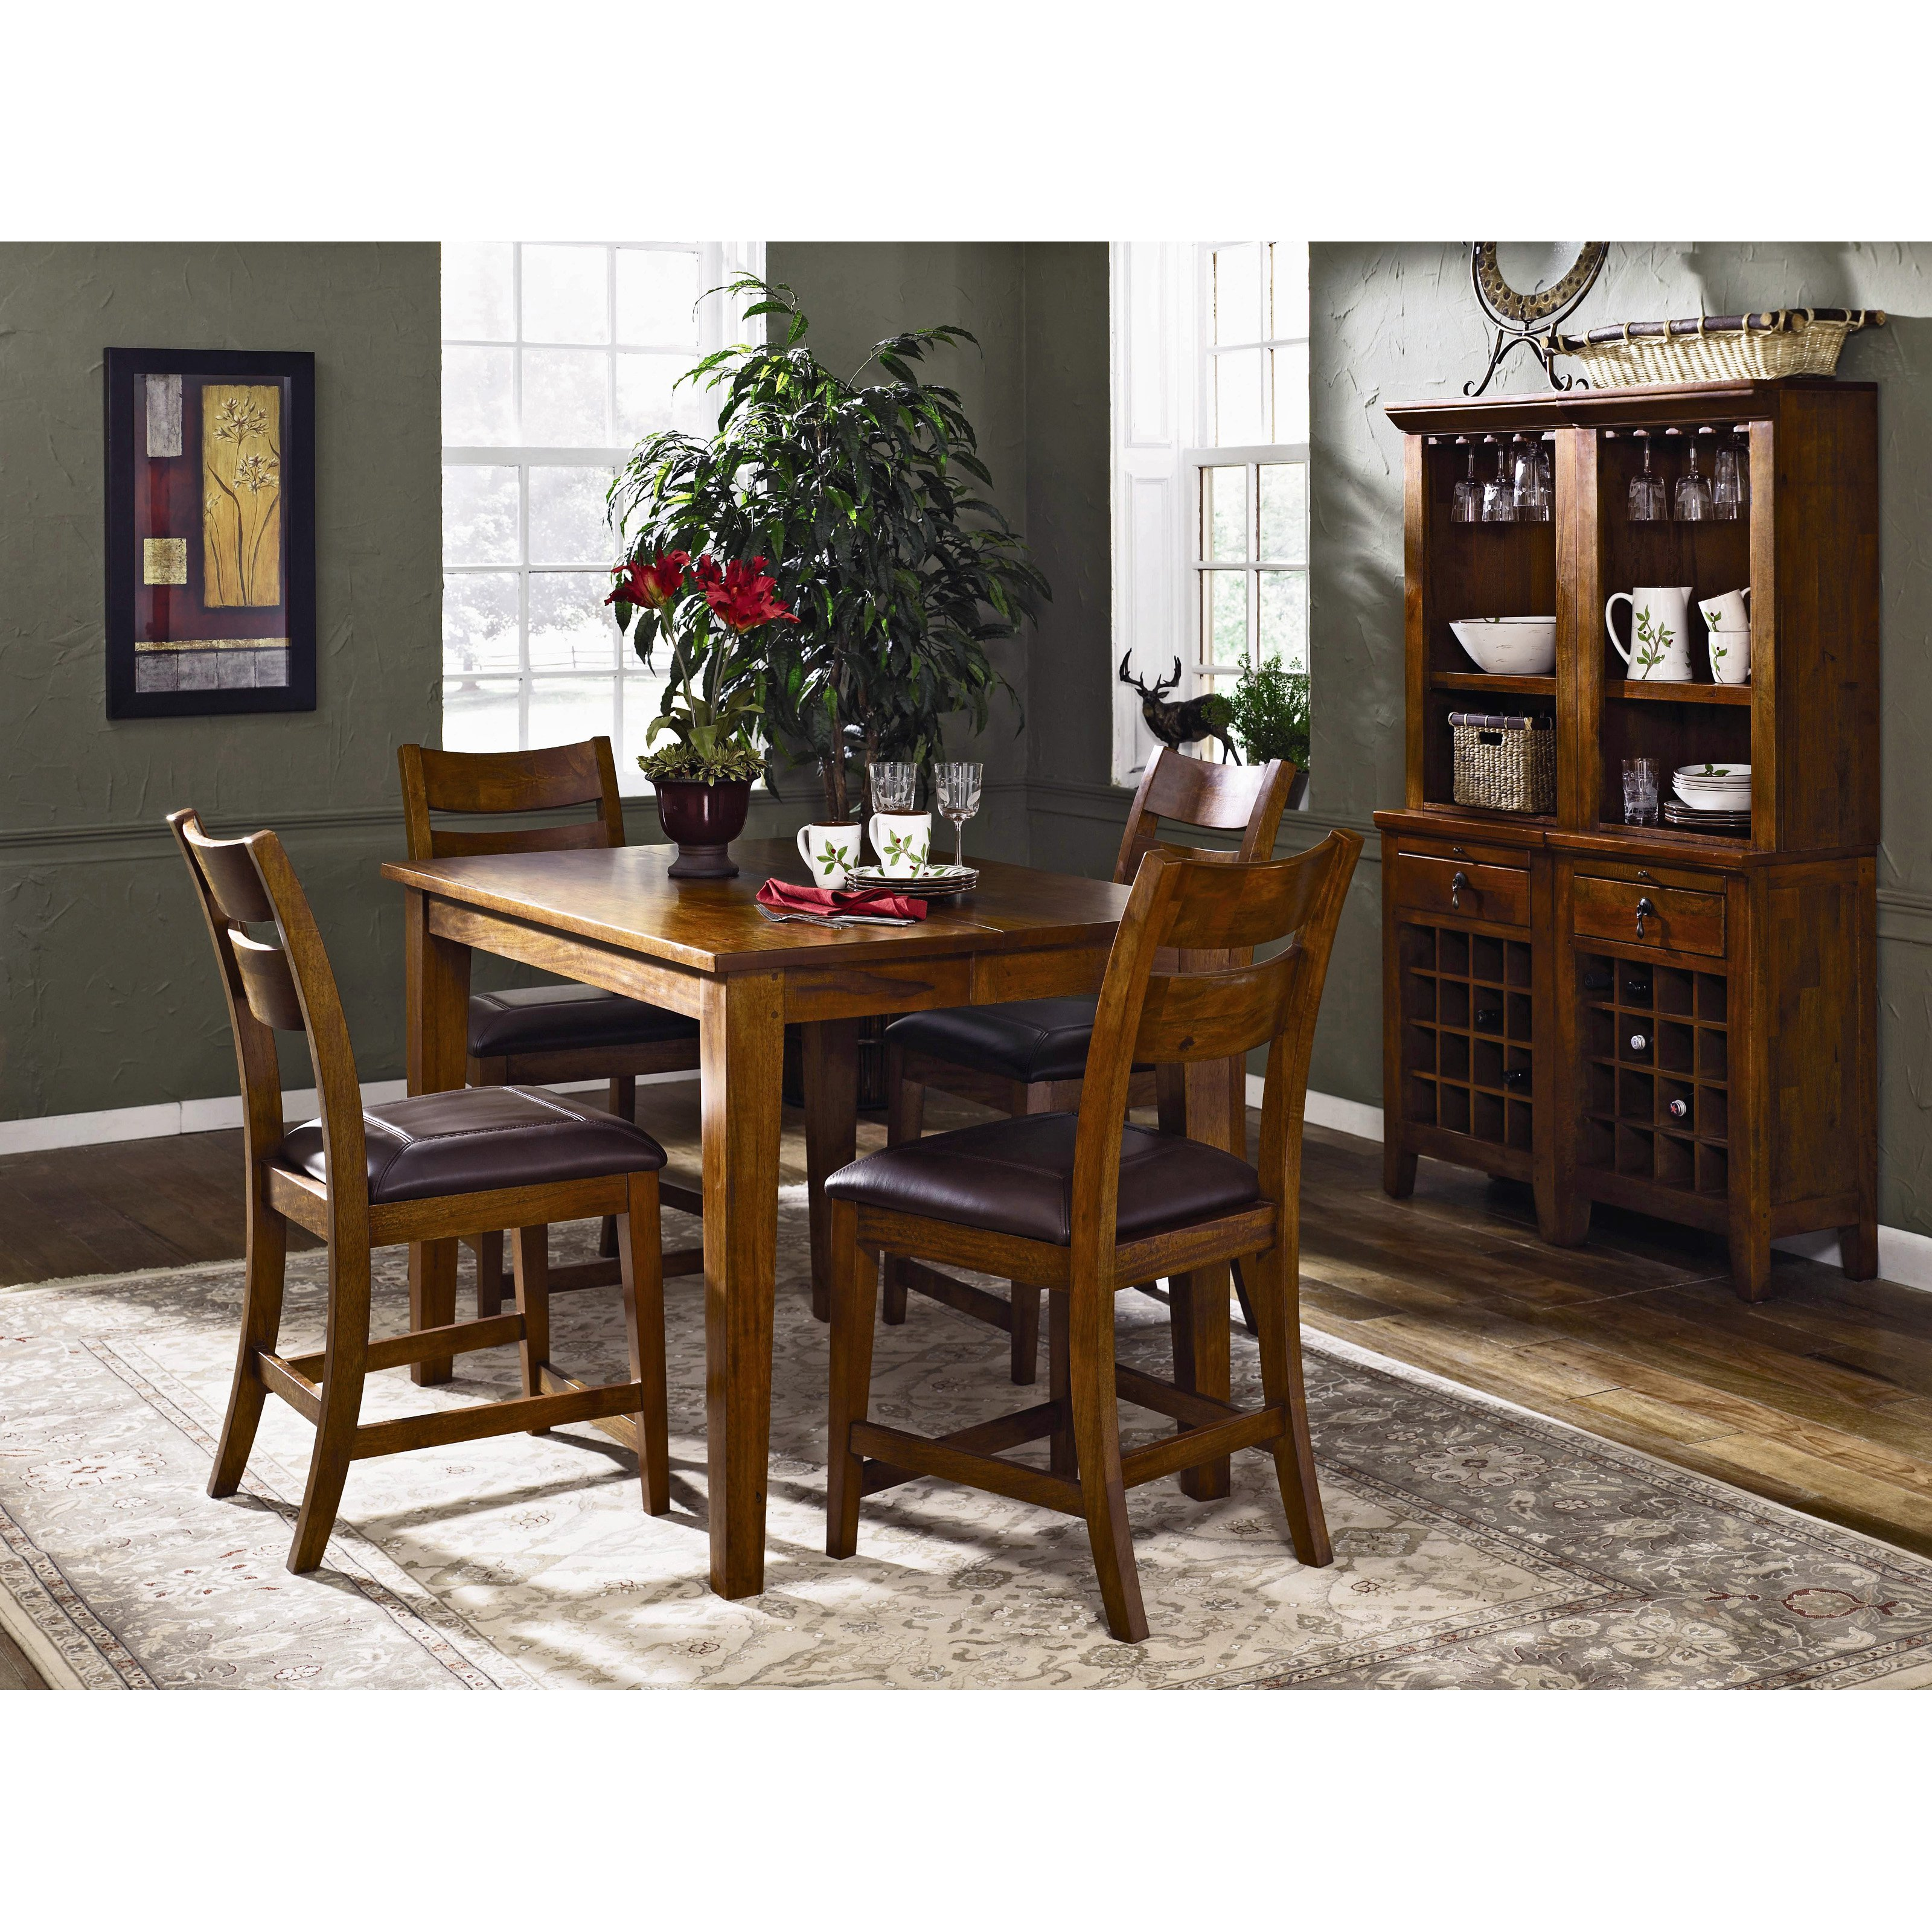 klaussner urban craftsman counter height dining table - walmart